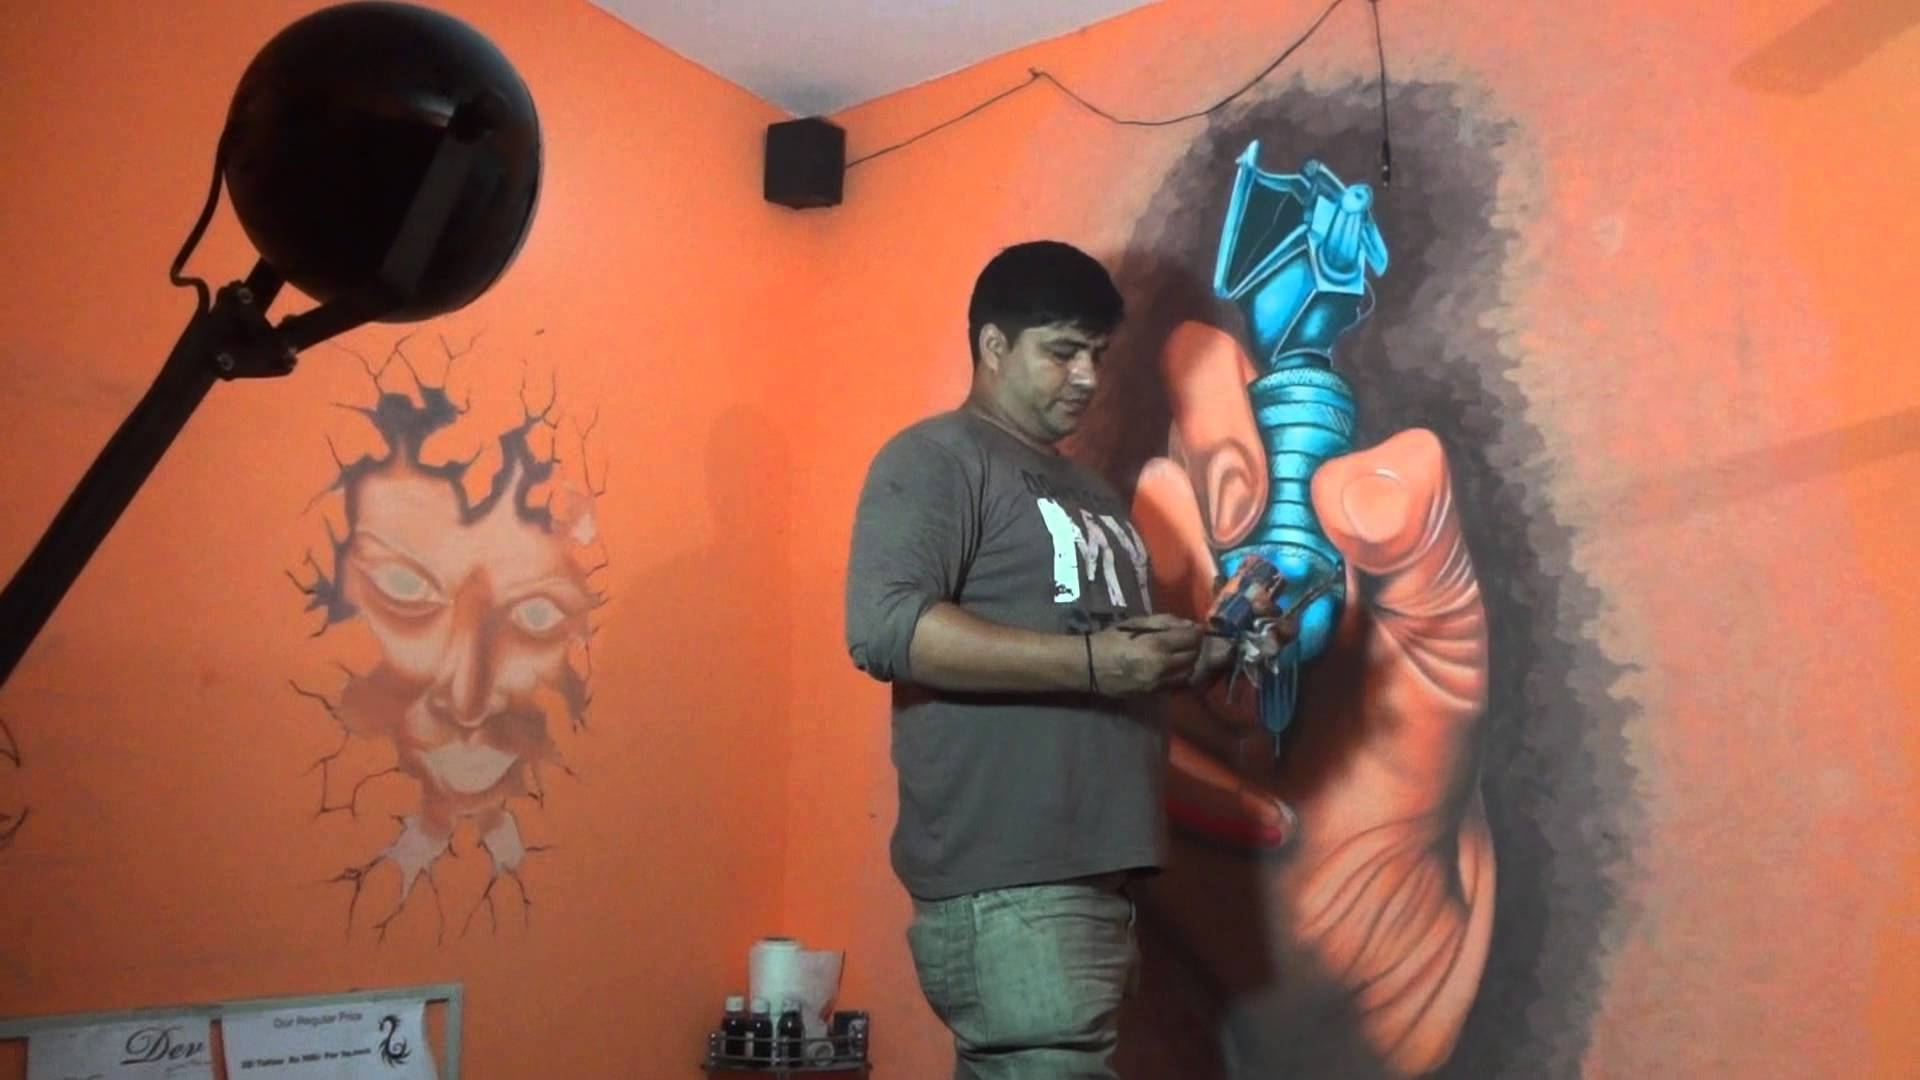 Tattoo Shop Wall Artdev 9313666999 - Youtube intended for Most Recently Released Tattoo Wall Art